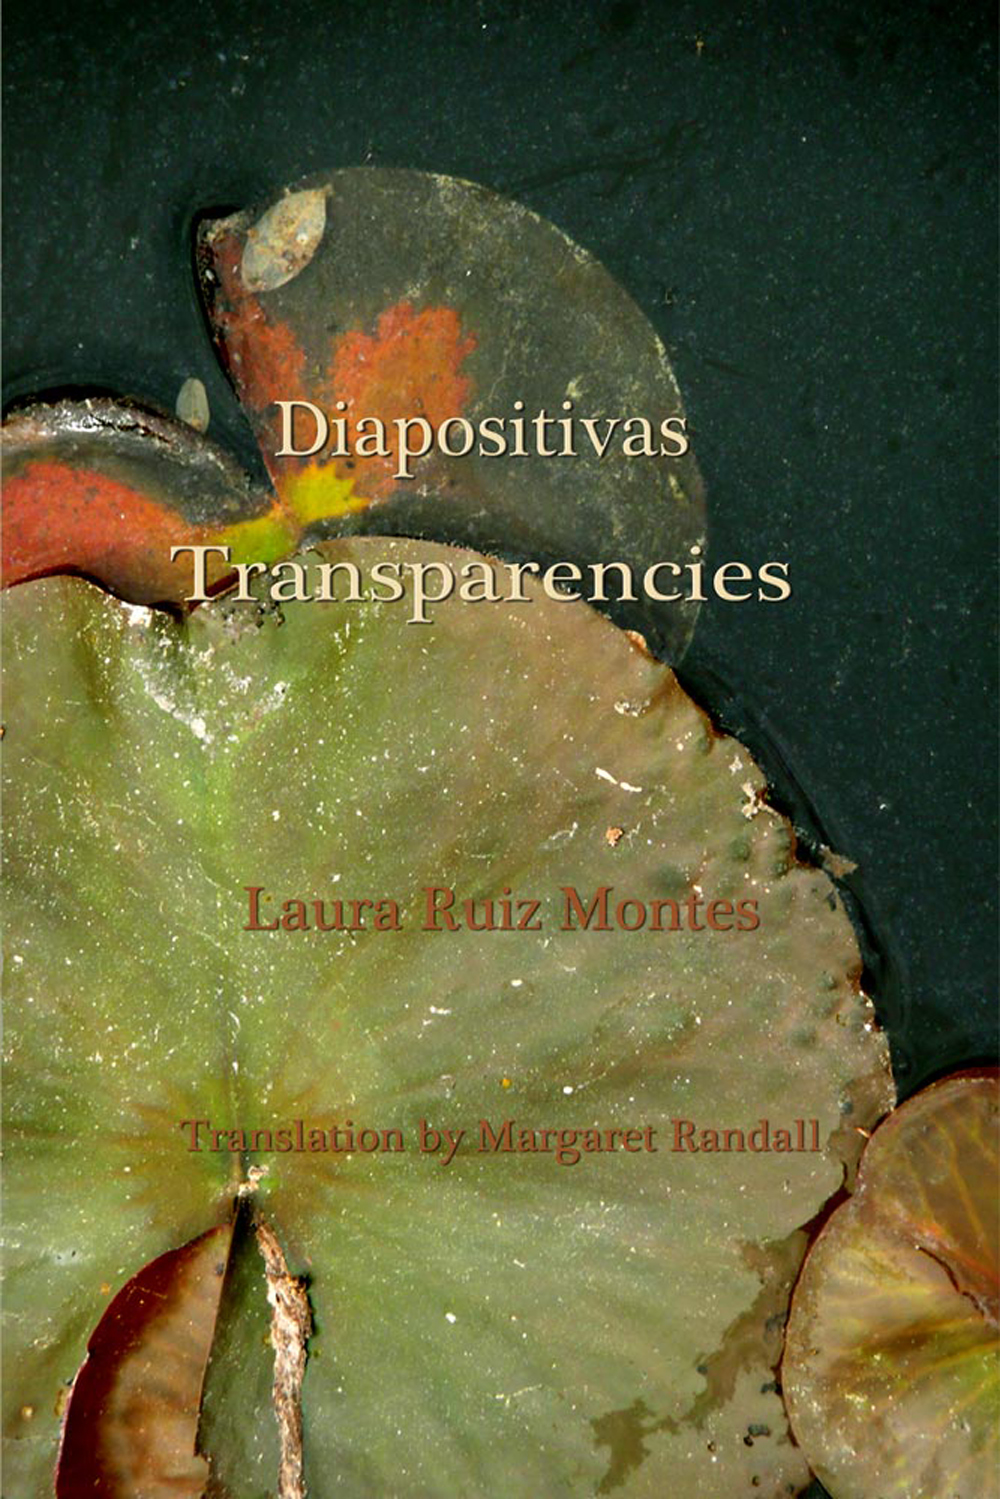 Diapositivas / Transparencies